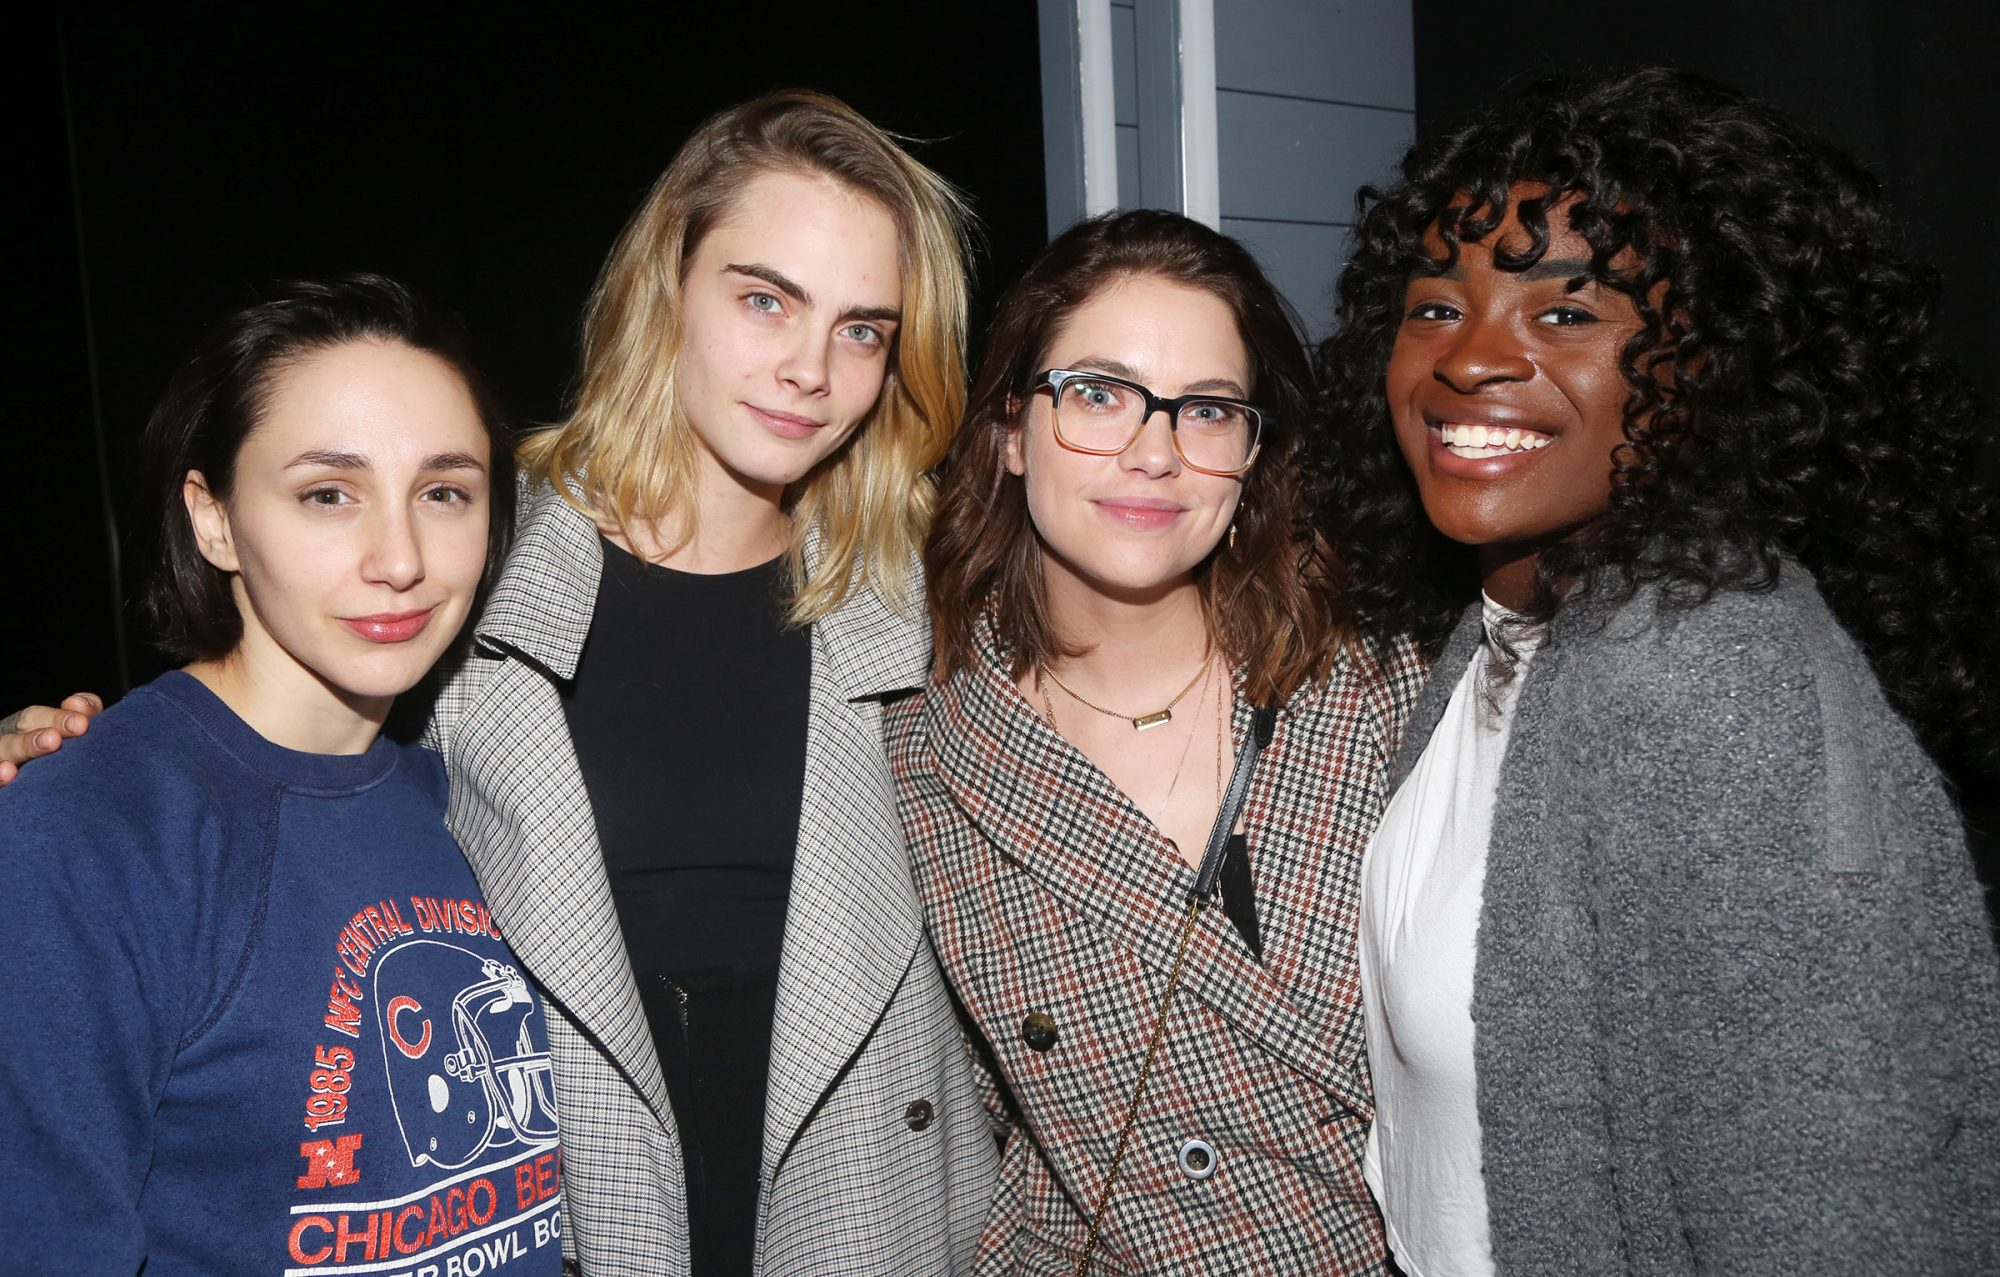 """Lauren Patten, Cara Delevingne, Asley Benson and Celia Rose Gooding pose backstage at the new Alanis Morissette musical """"Jagged Little Pill"""" on Broadway at The Broadhurst Theatre on November 20, 2019 in New York City"""